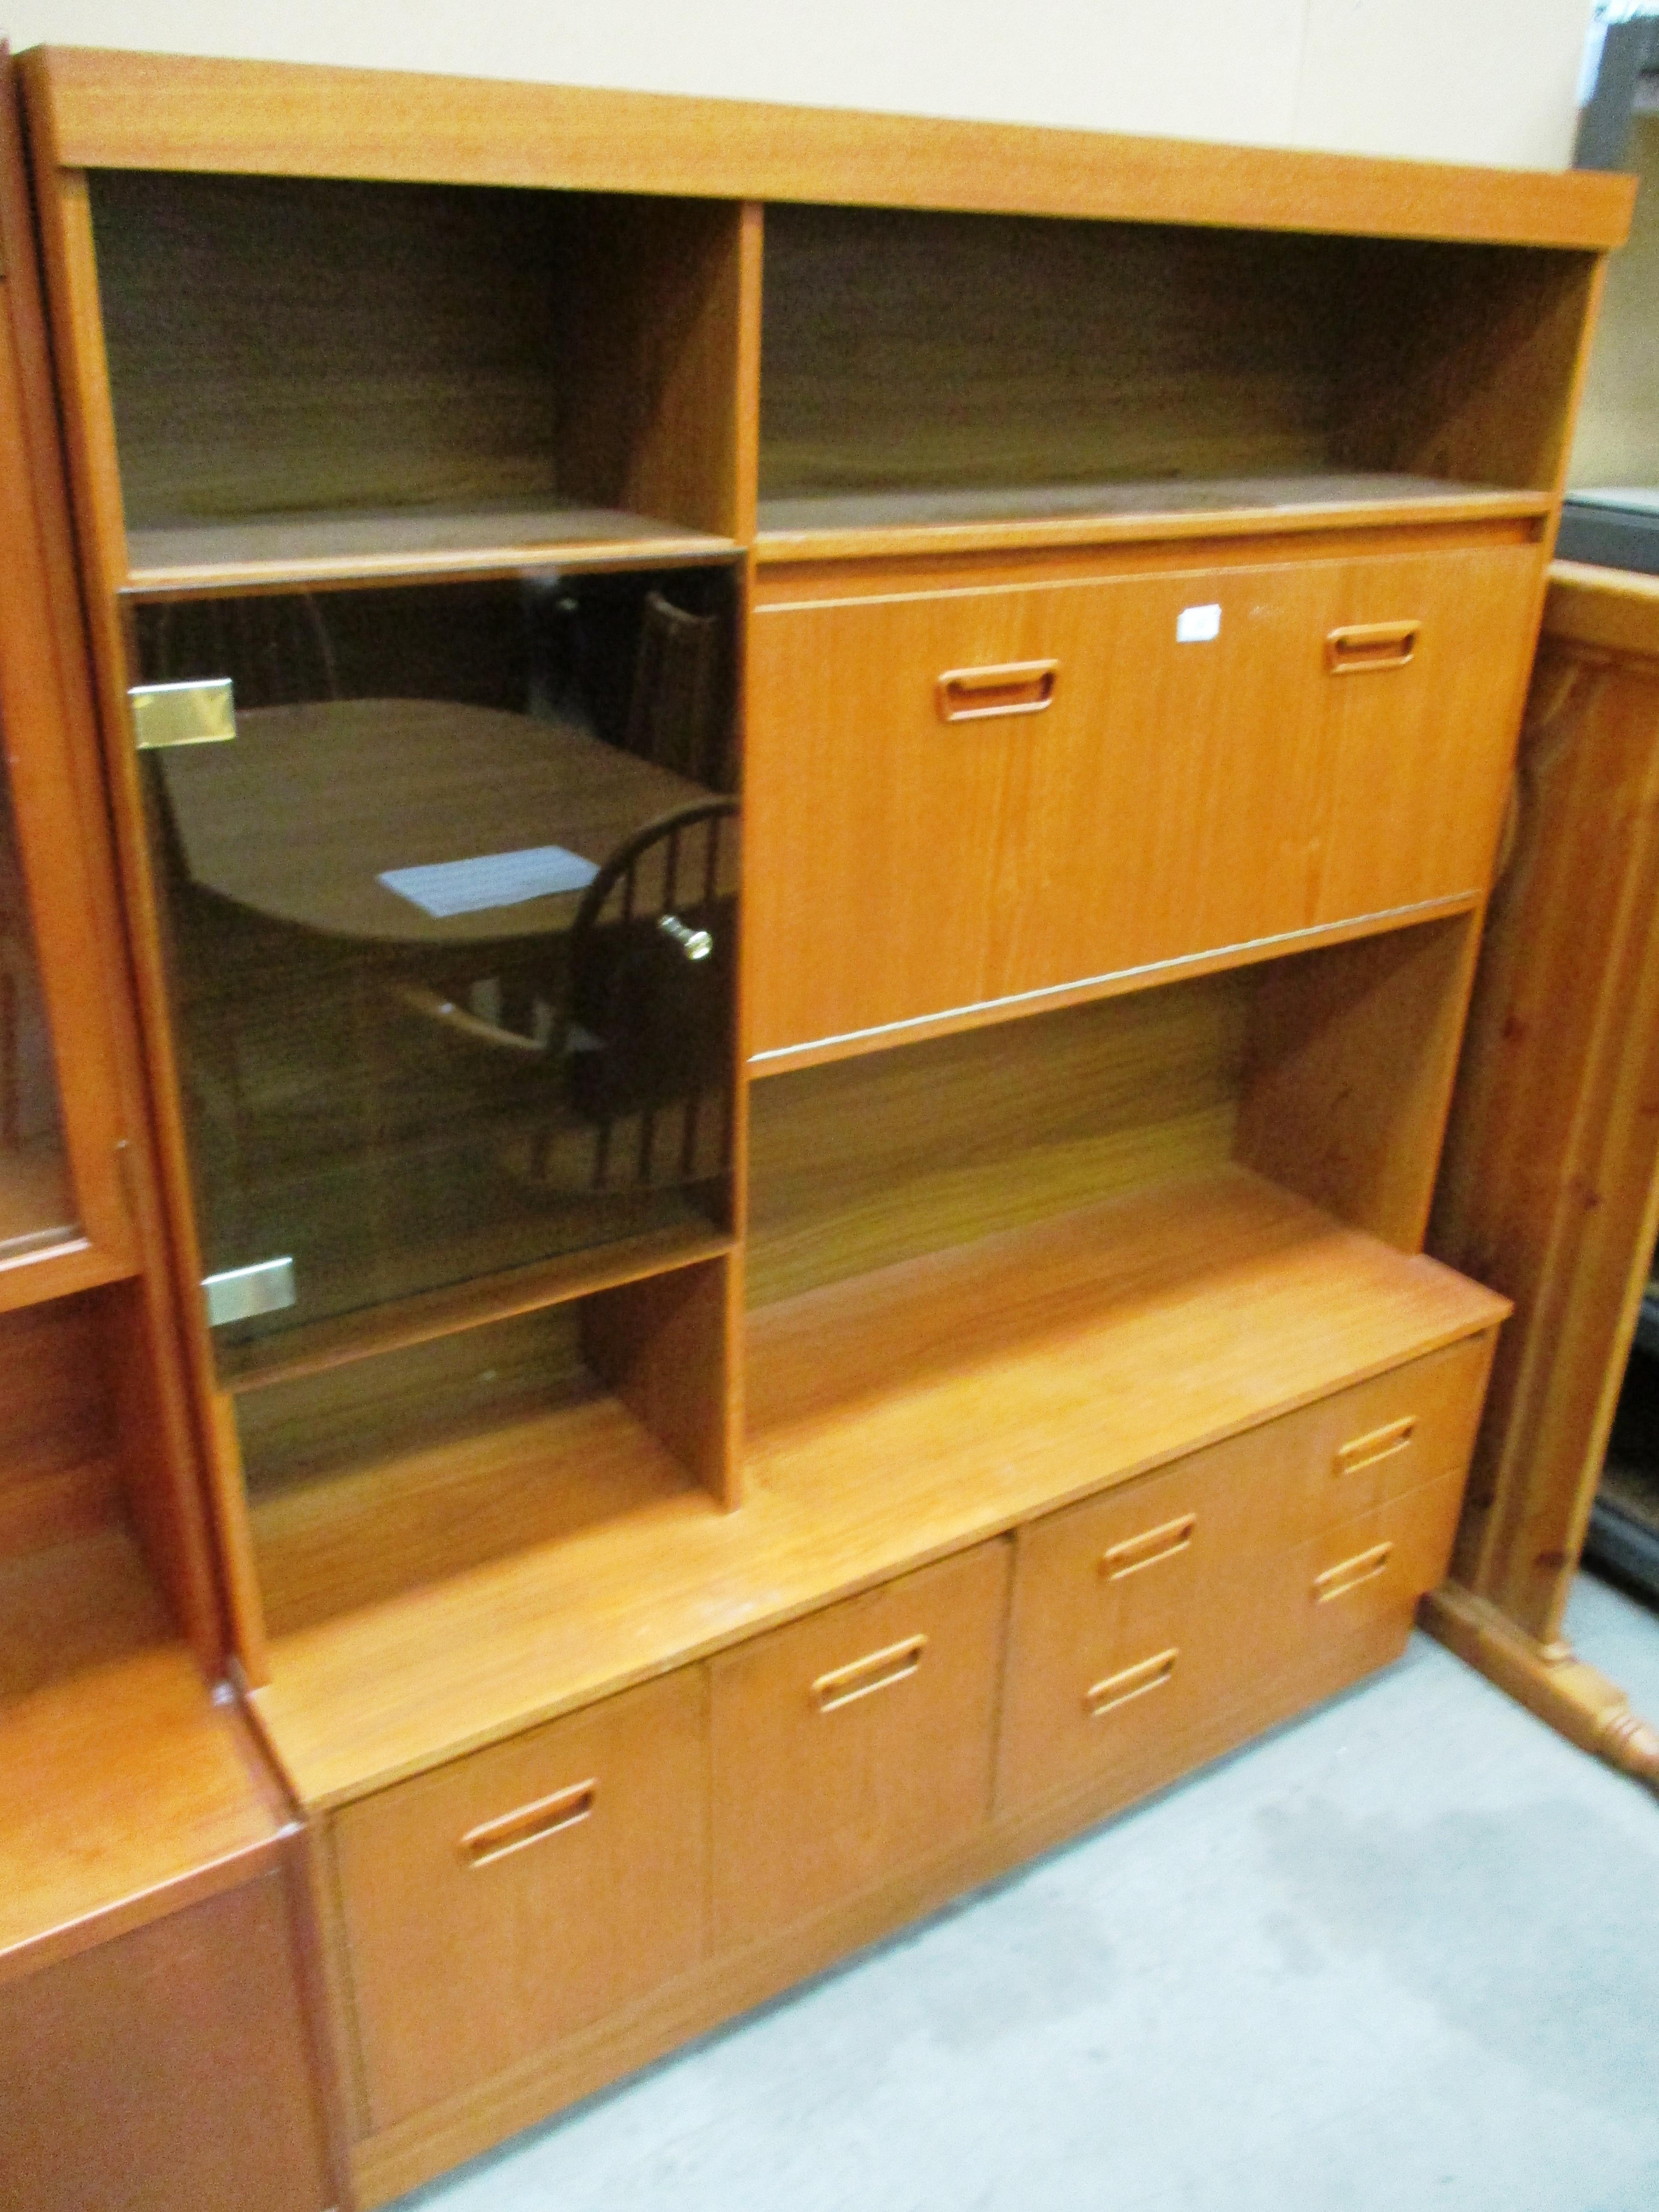 Lot 19 - A teak wall unit with 3 upper doors (1 smoked glass glazed) over 2 drawers 2 door base 136 x 168cm